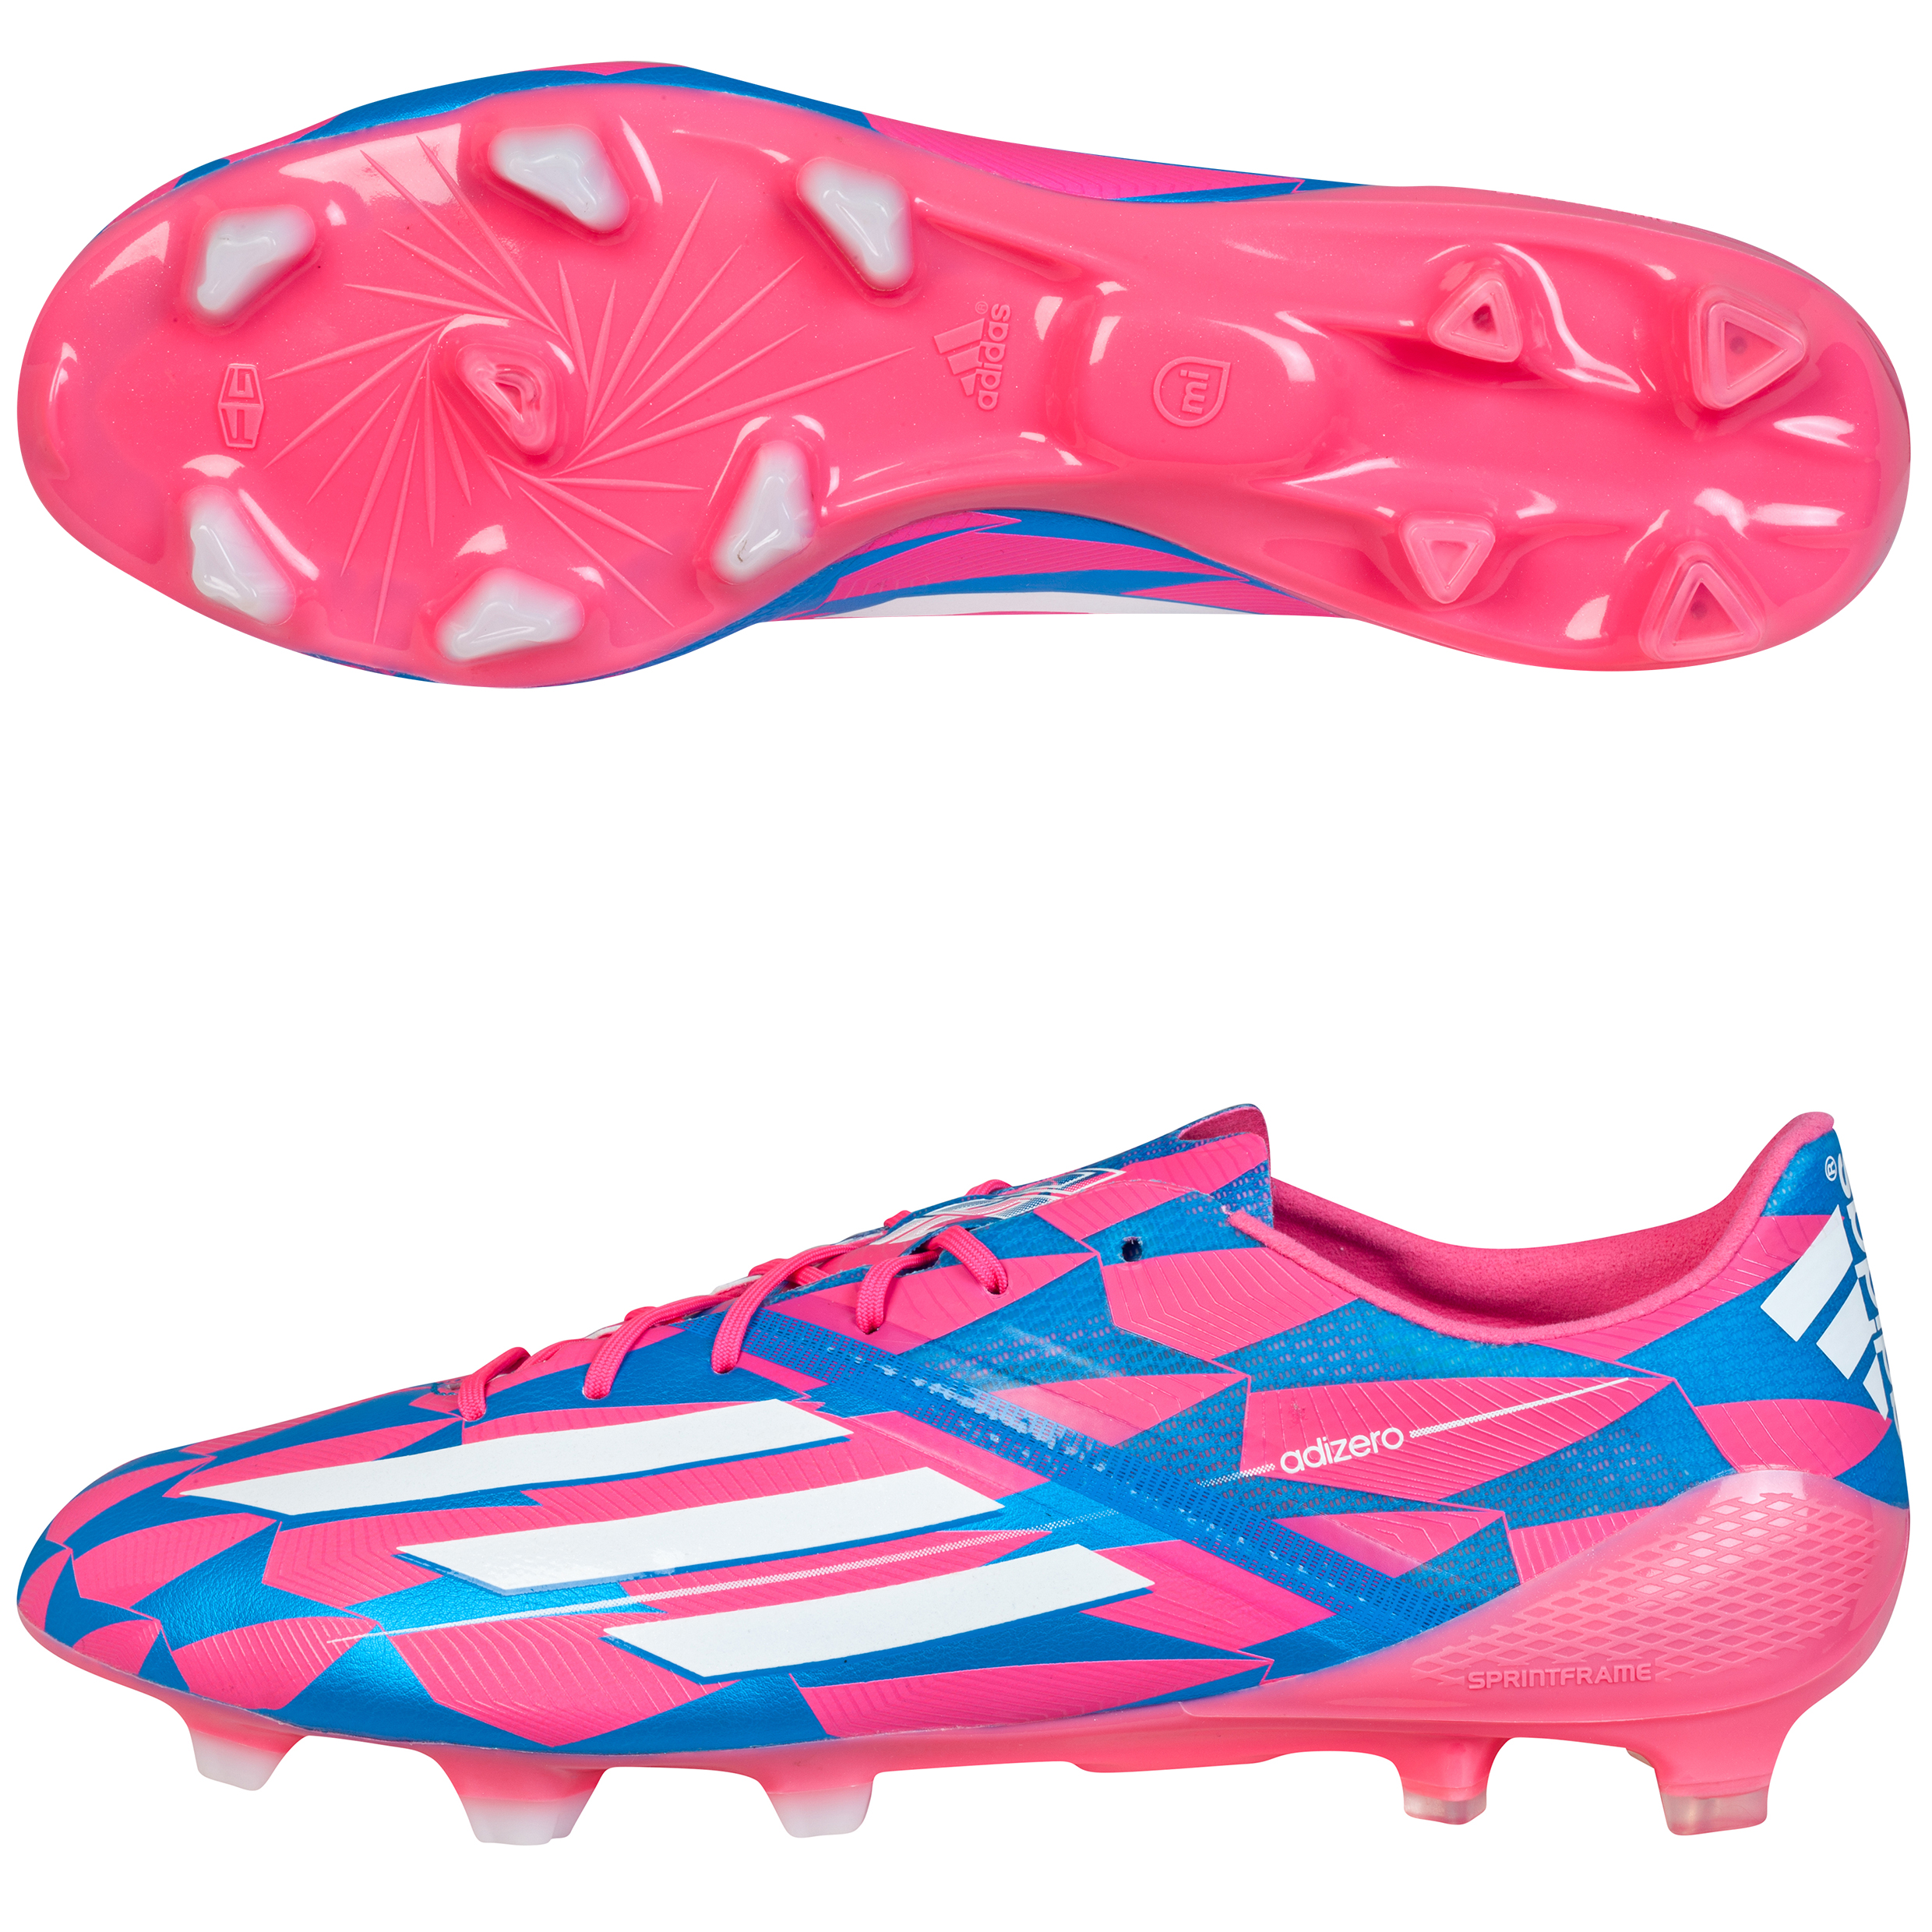 Adidas F50 adizero Firm Ground Football Boots Pink